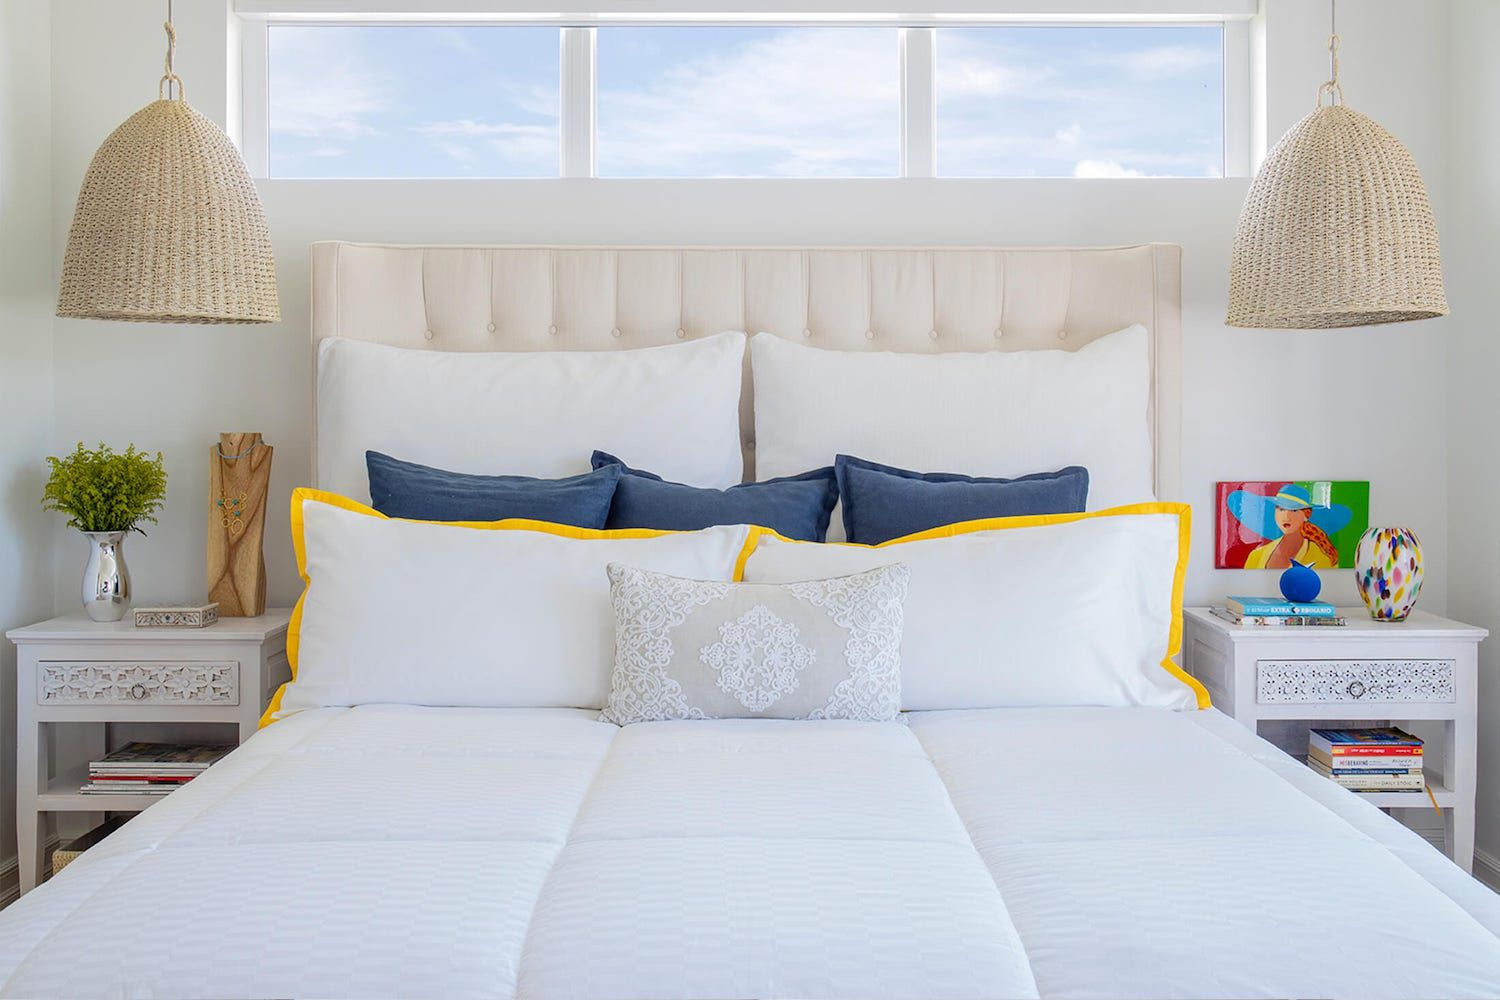 mostly white neutral bedroom with wicker rattan hanging lights, small pops of color, open windows above the bed